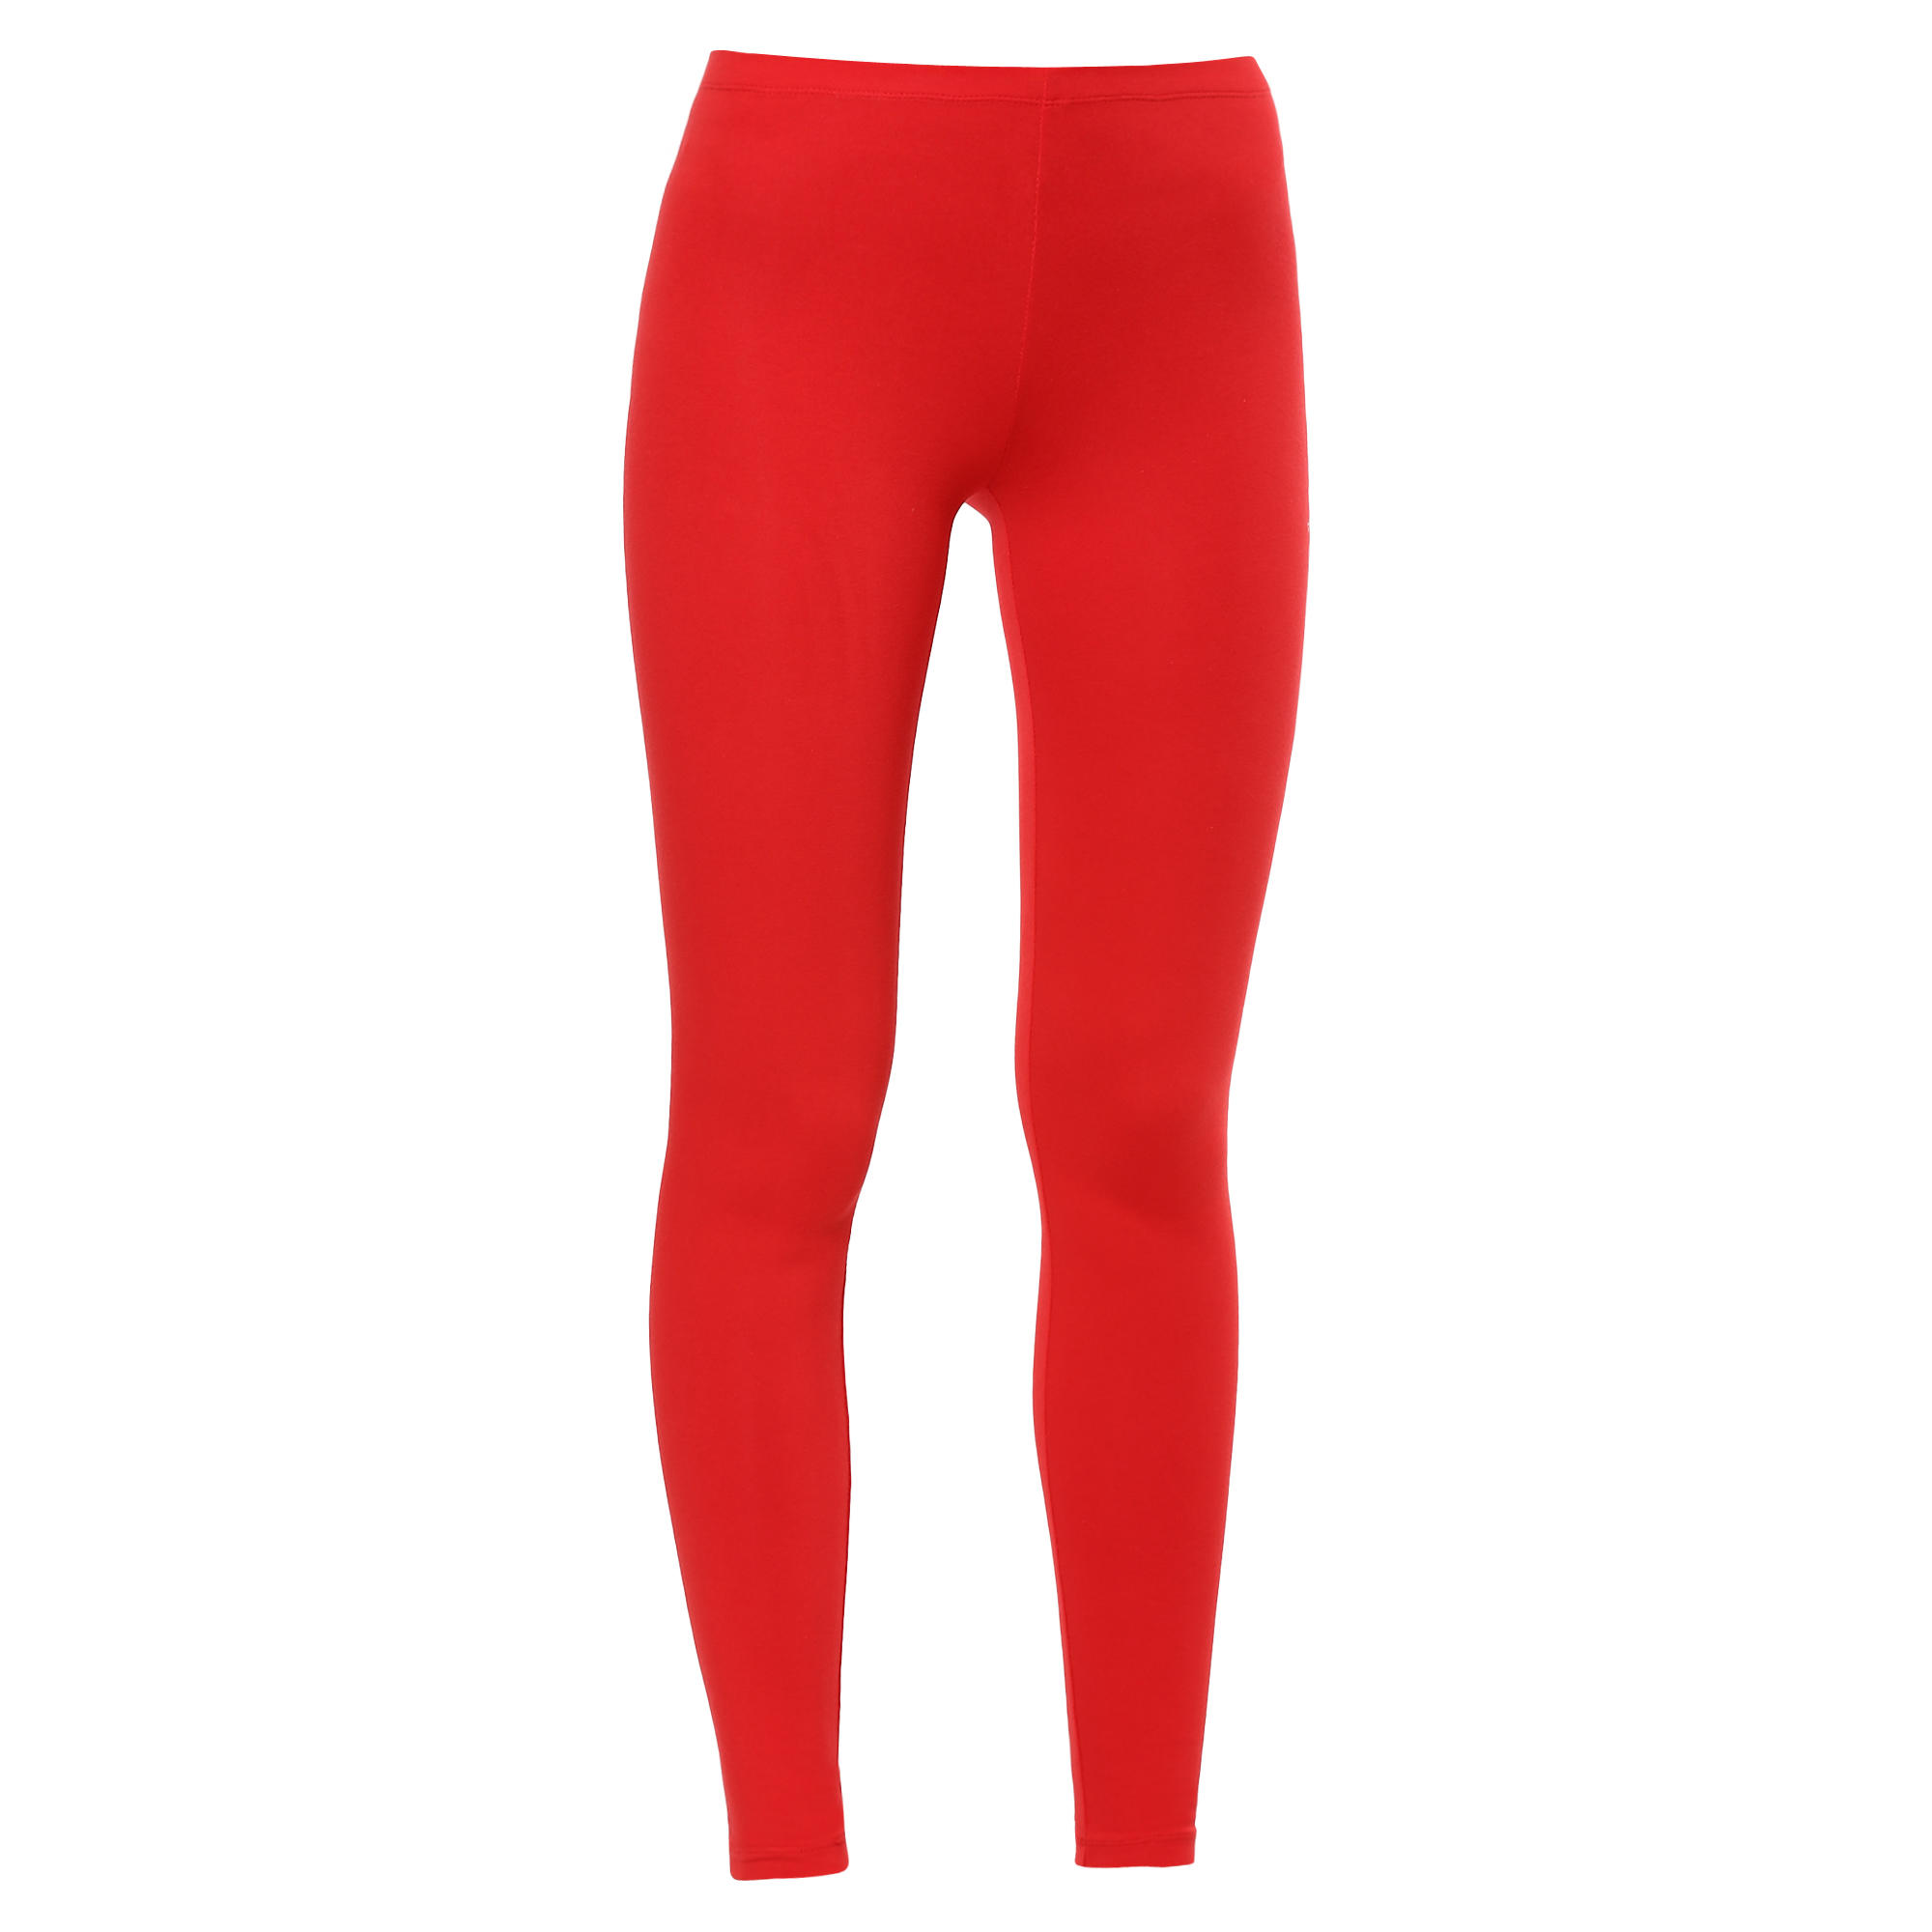 Salto Women's Fitness Leggings - Red